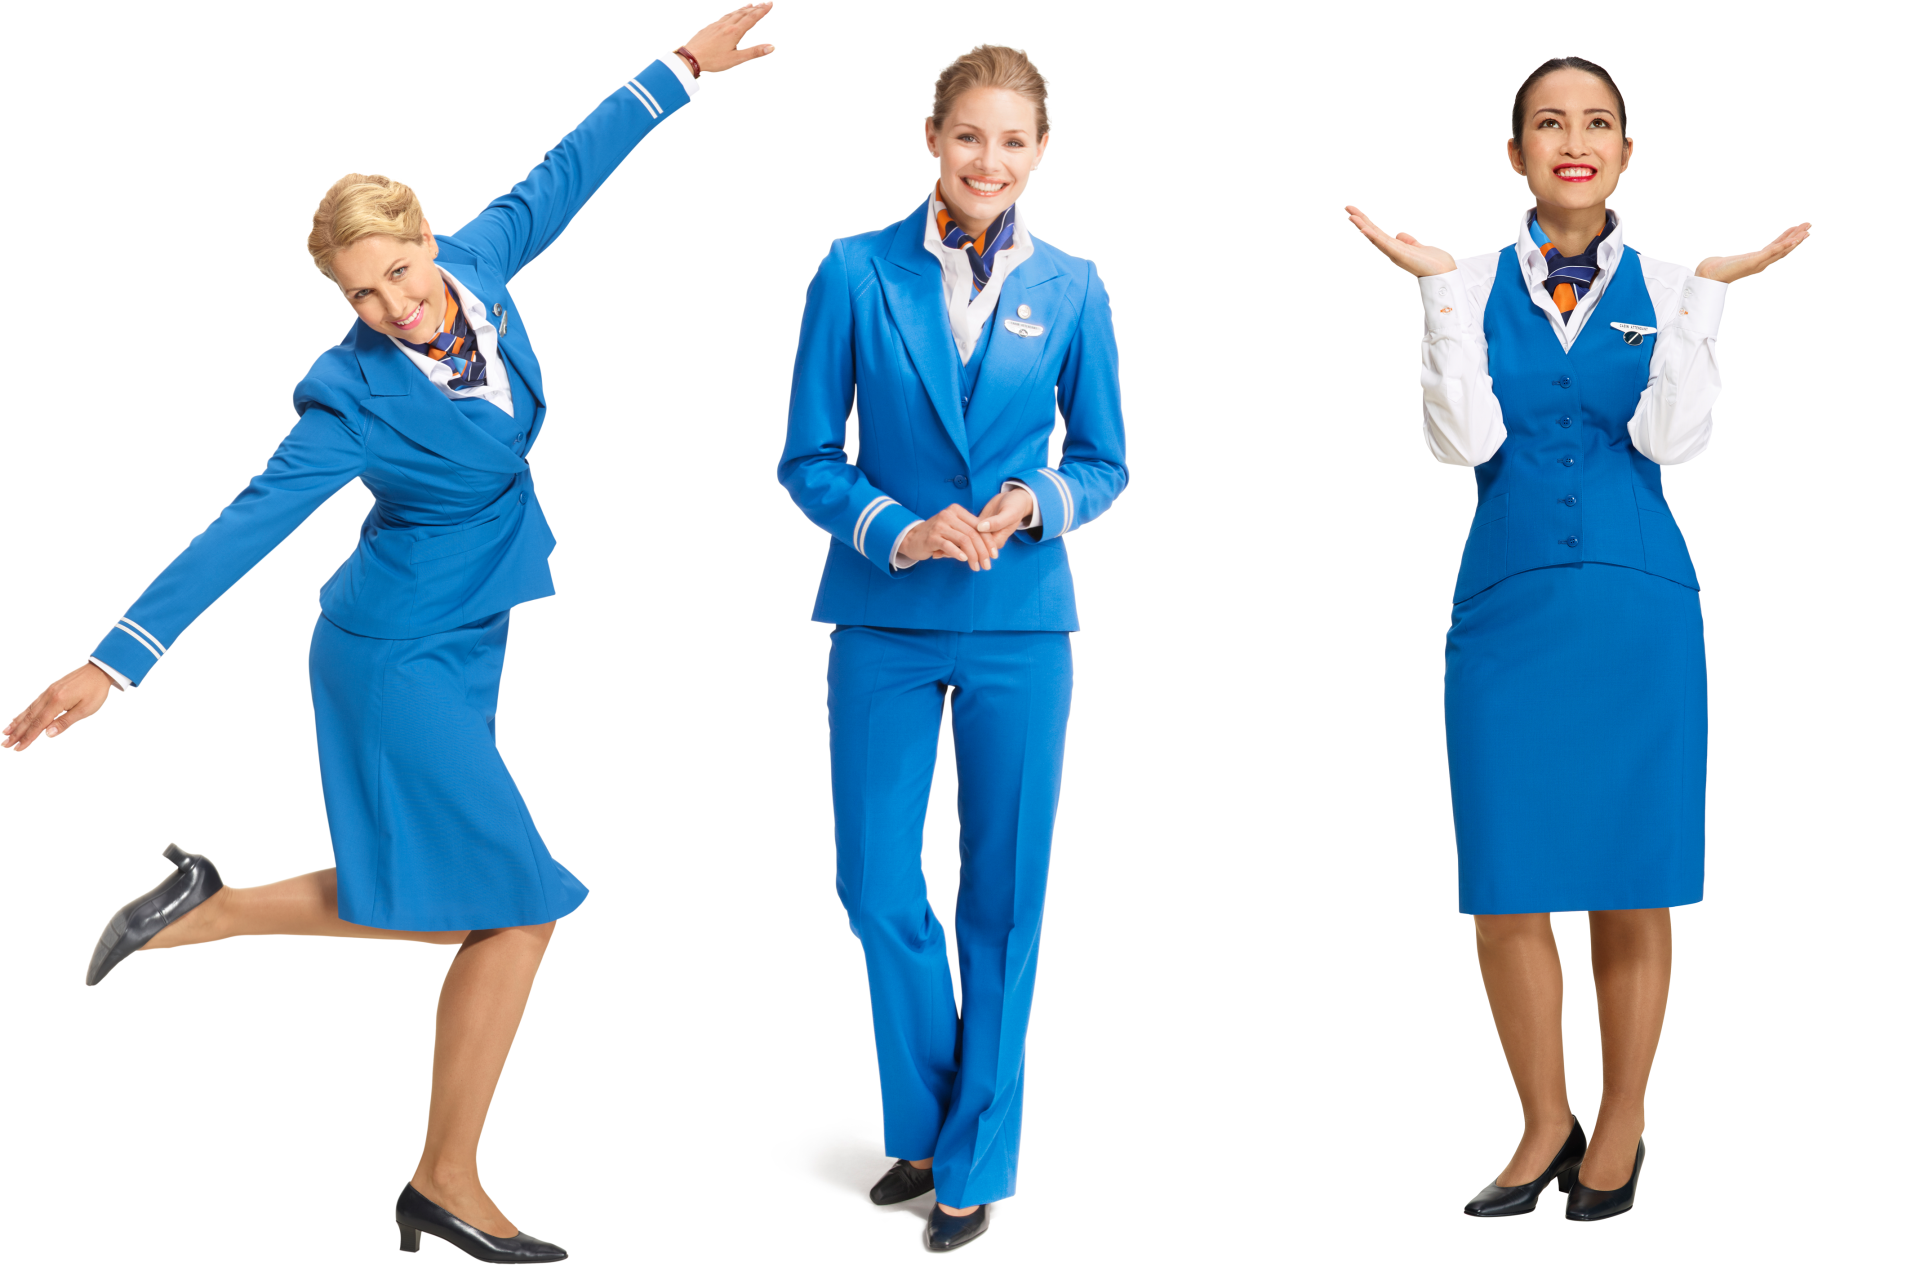 For the first time in KLM uniform history, you can get a